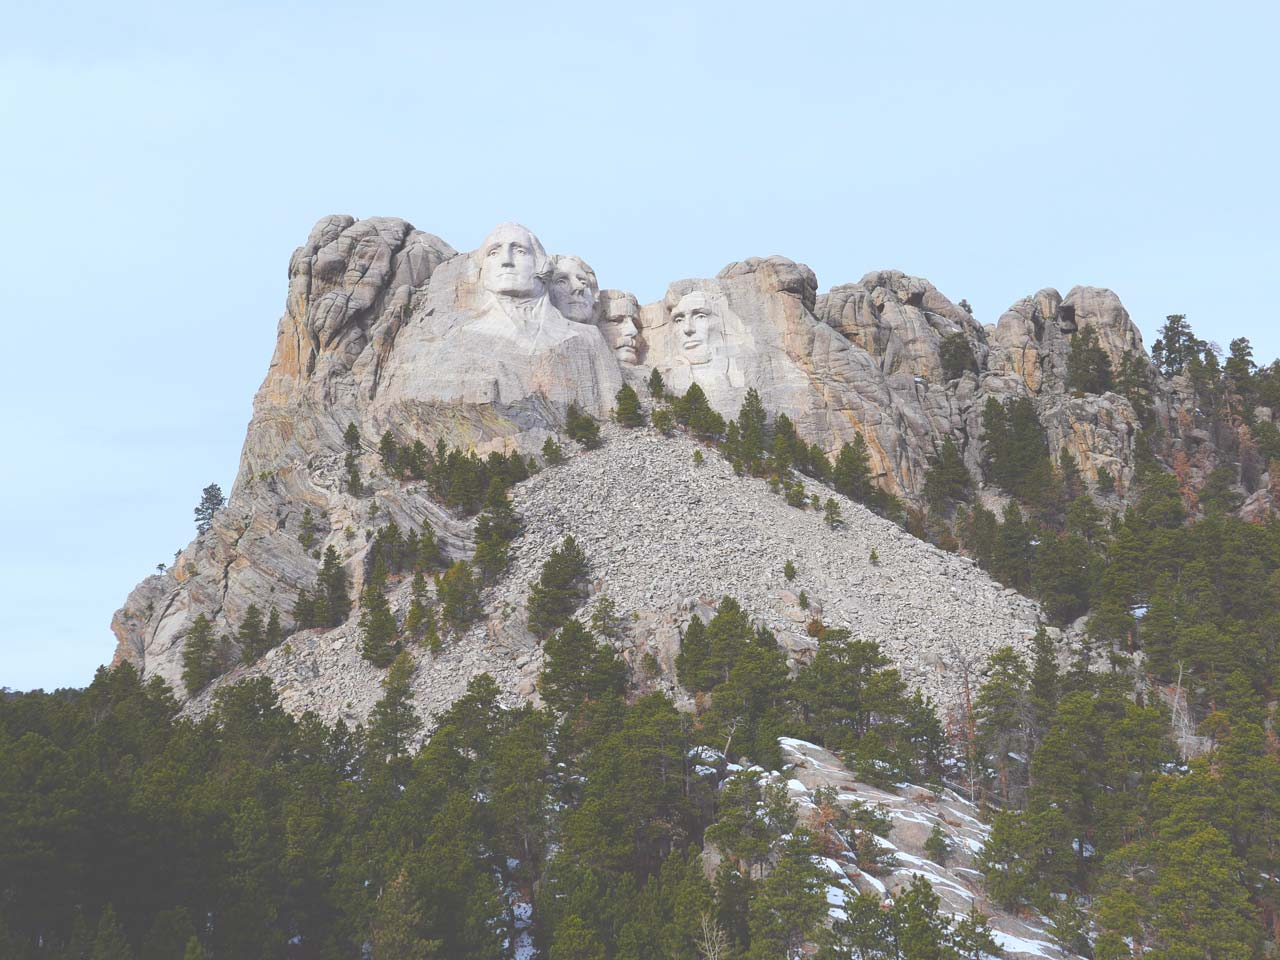 Dakota-Sud-Nelly-Genisson-26-Rushmore